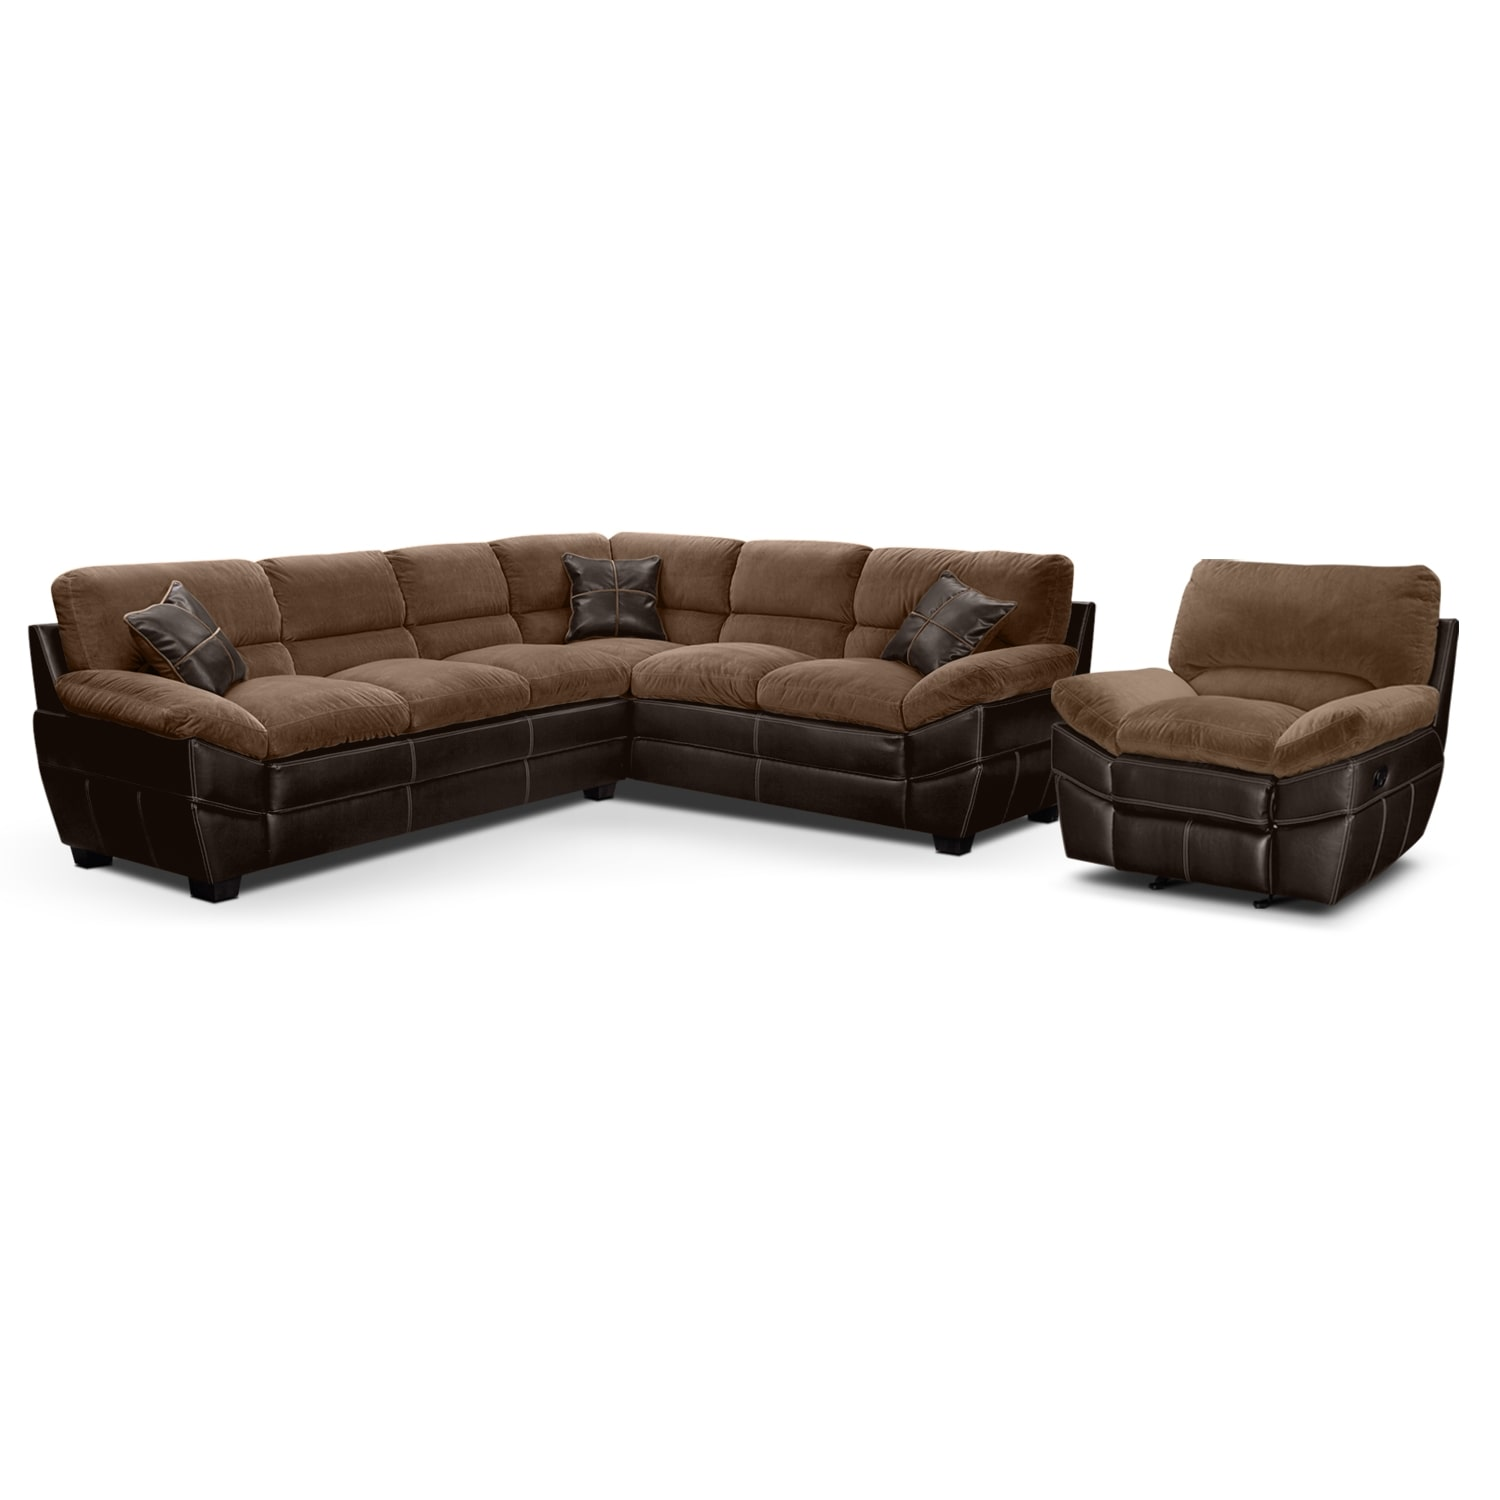 Chandler Beige II 2 Pc. Sectional and Glider Recliner